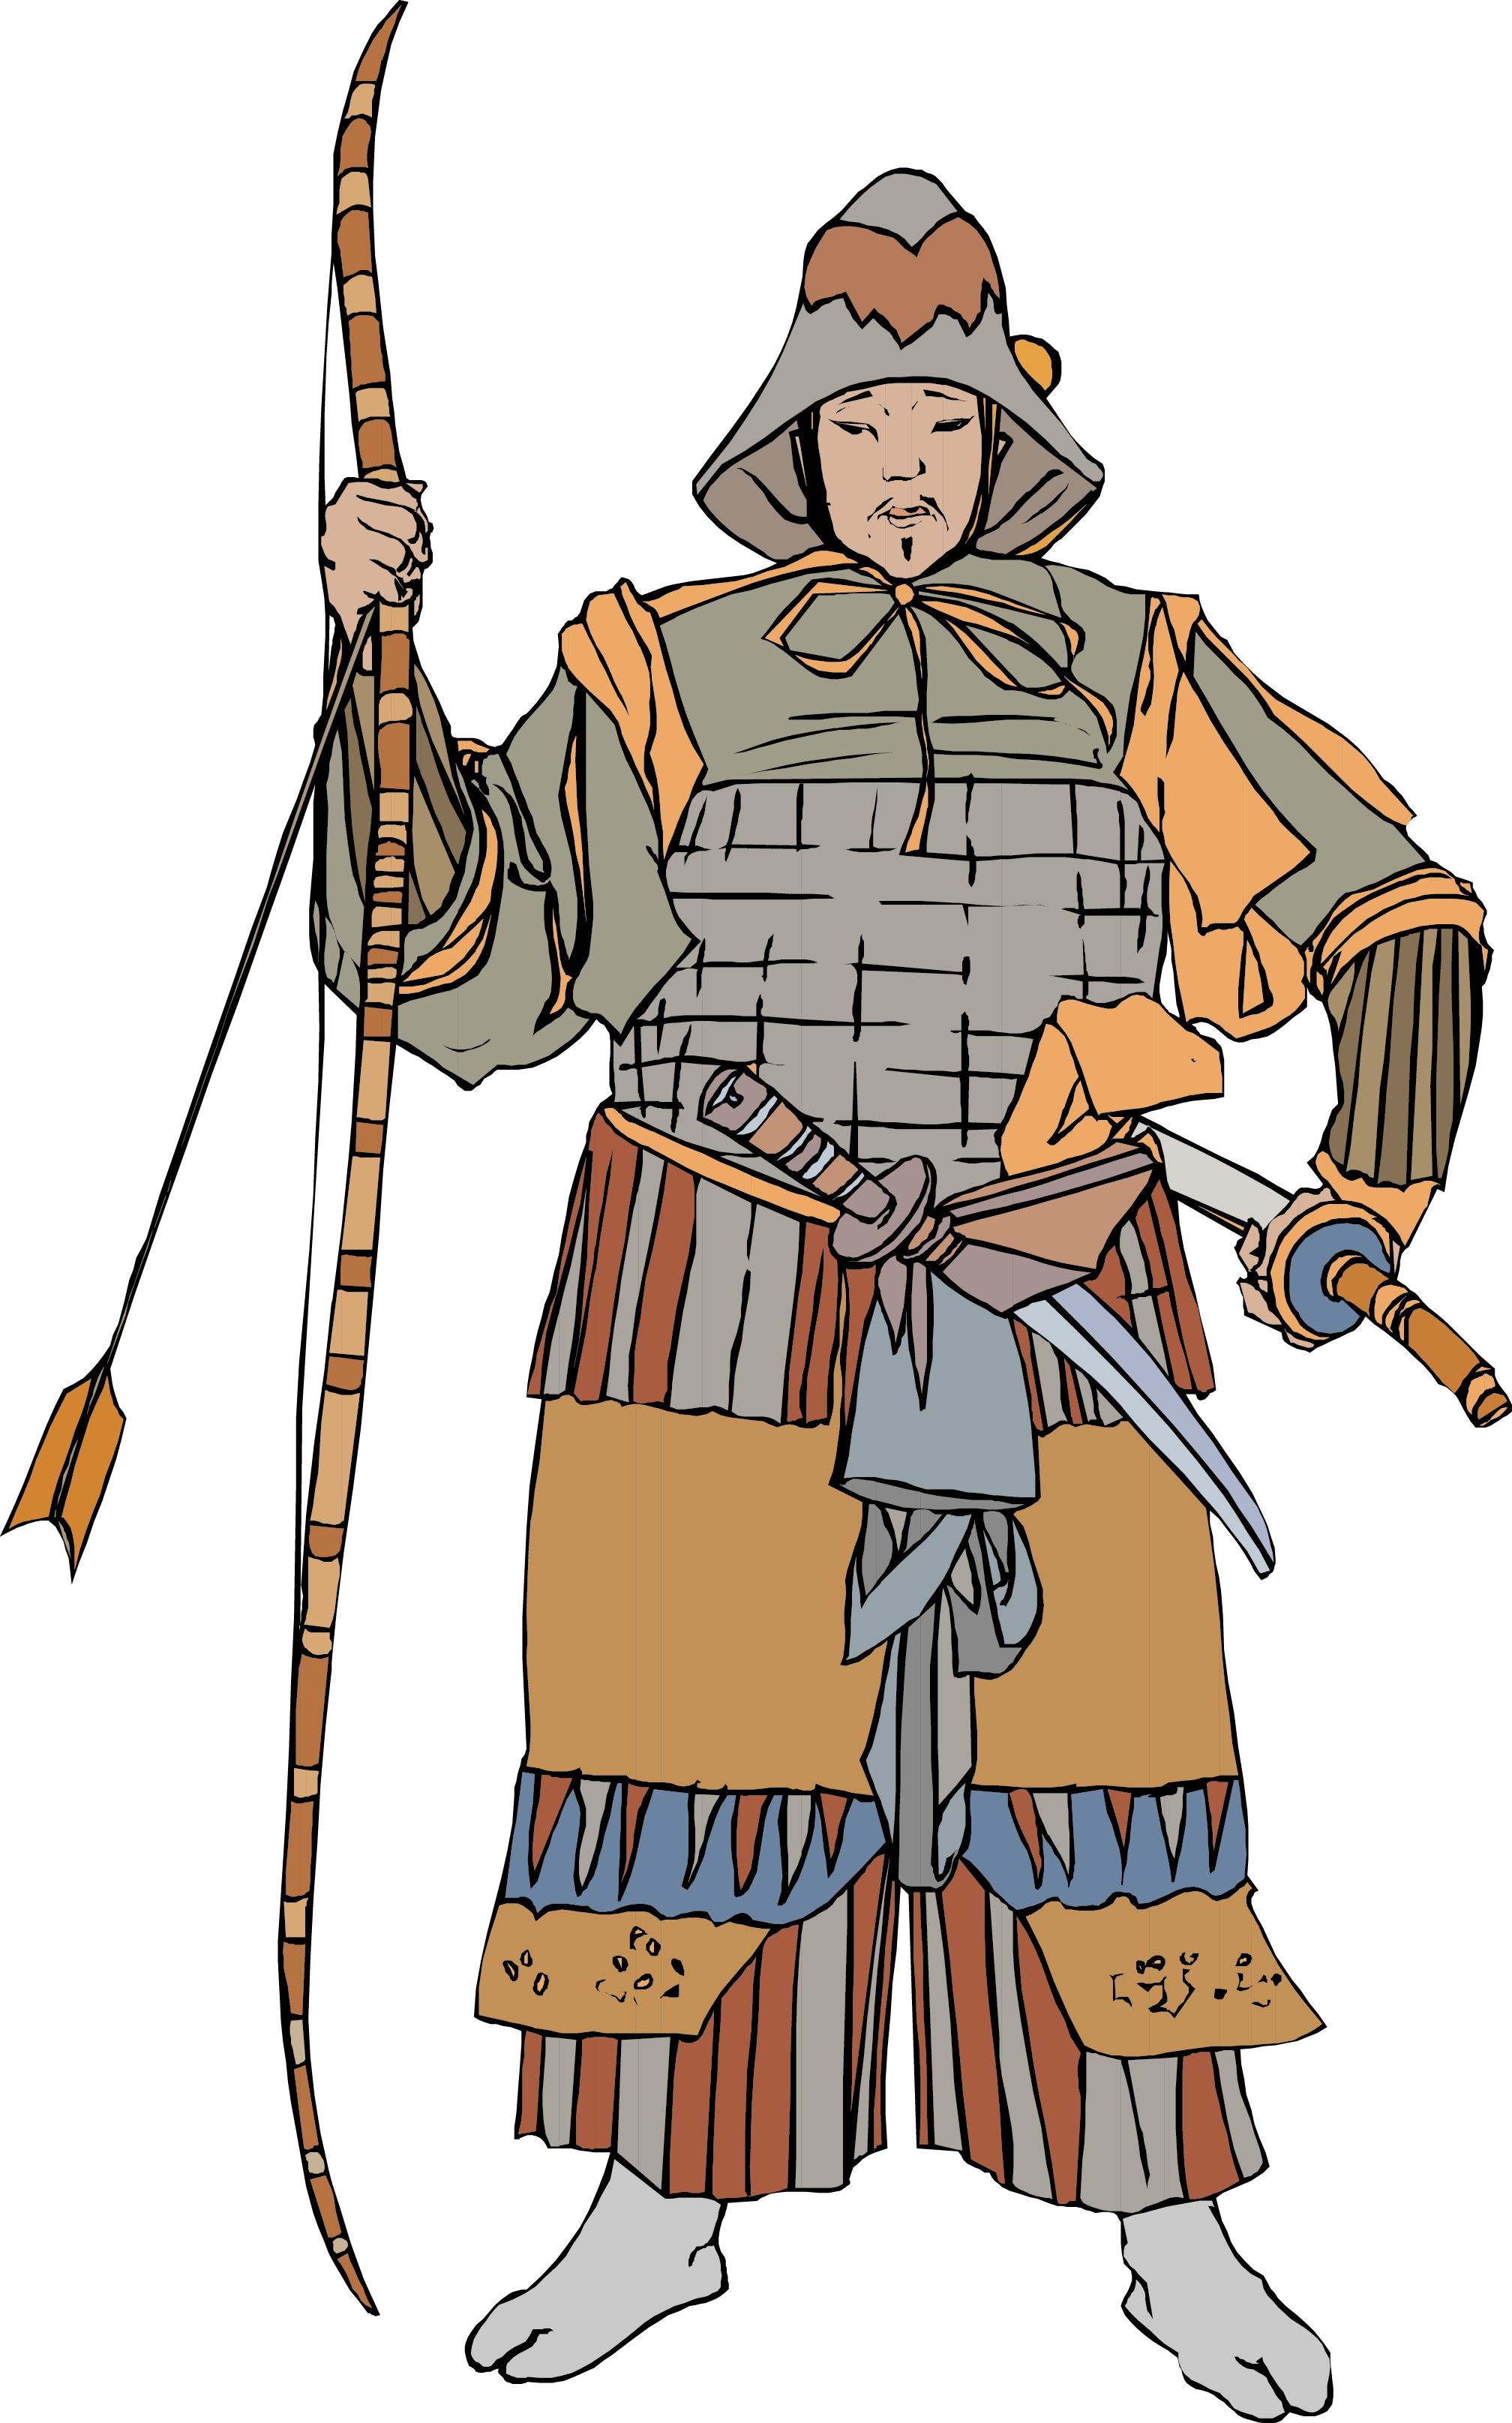 Japan clipart bow japanese. Soldier ancient history soldiers